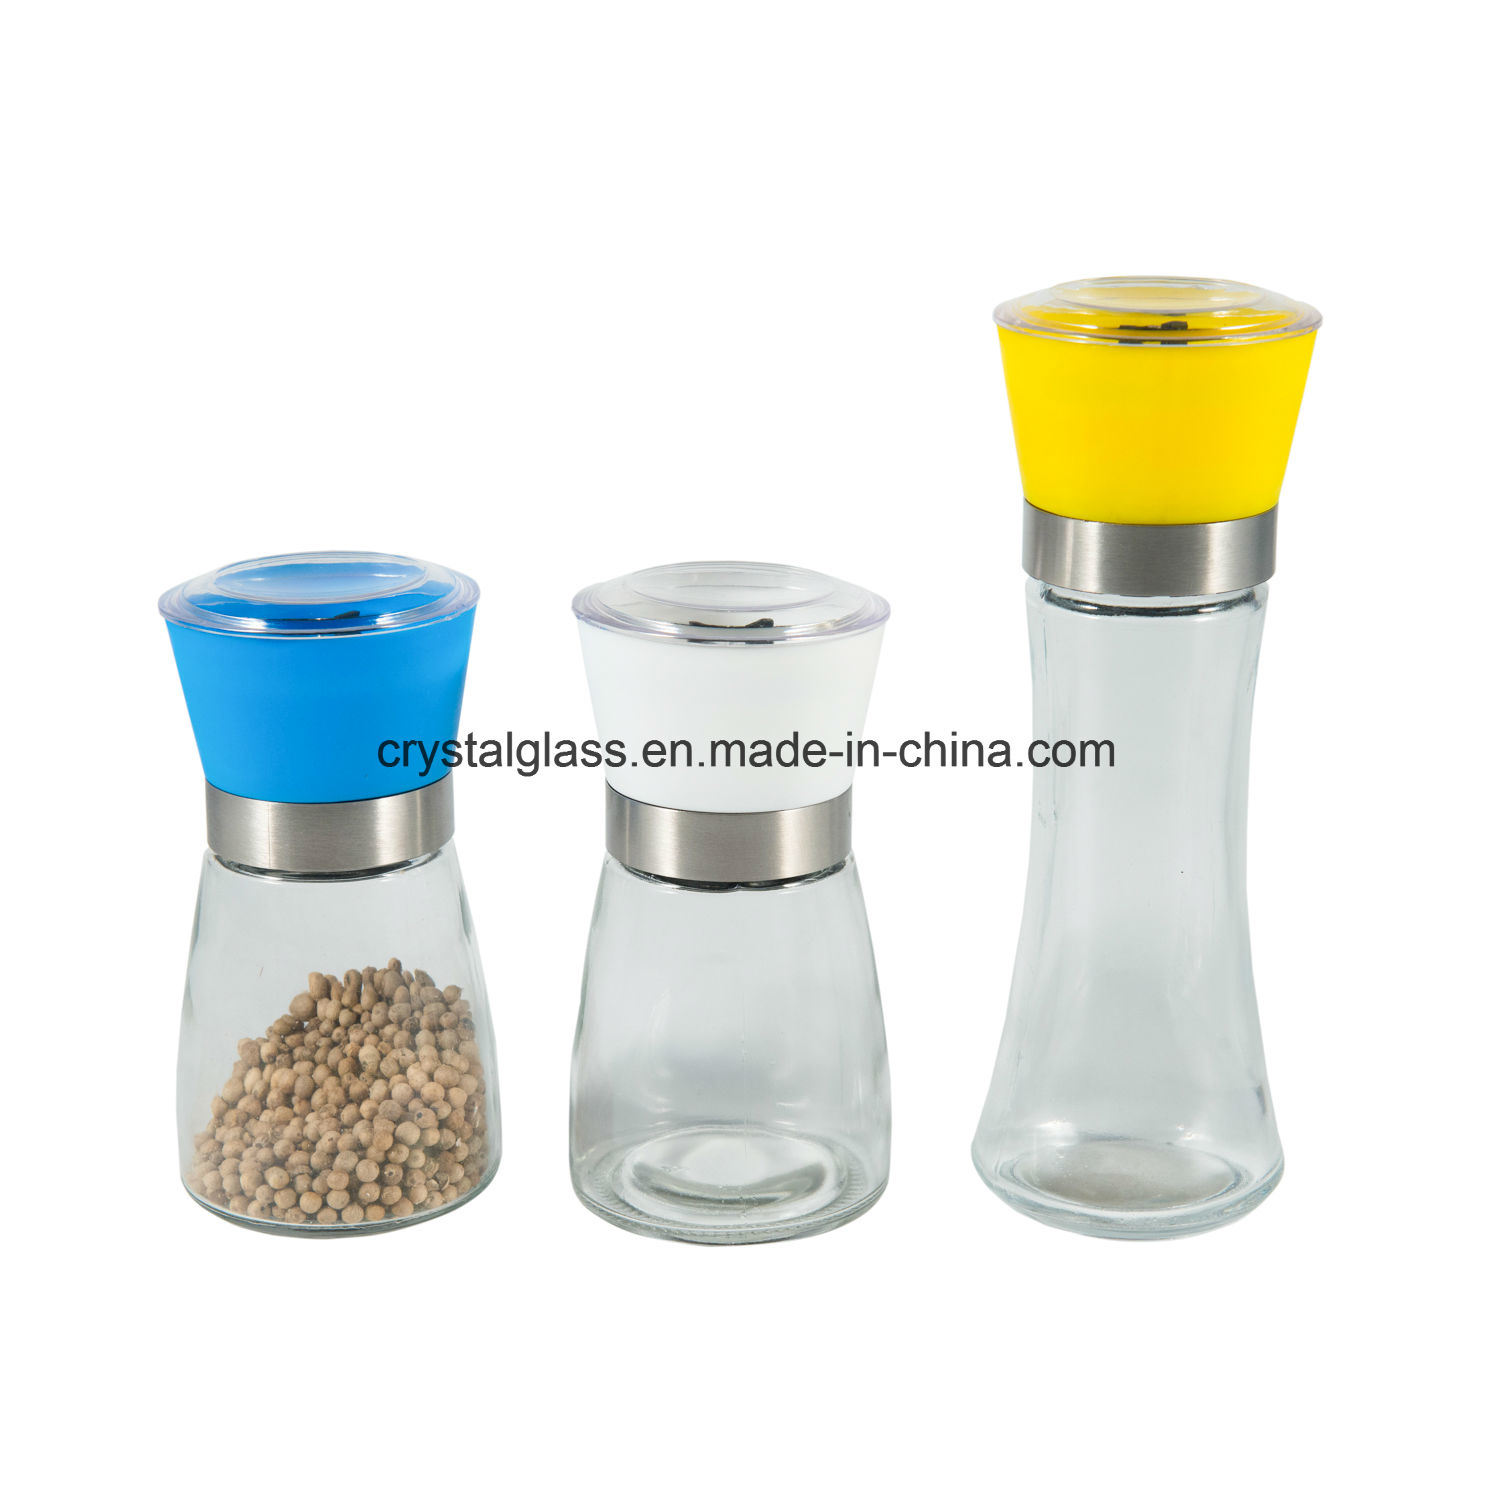 Fancy Pepper Grinder China Pepper Mill Grinder Pepper Mill Grinder Manufacturers Suppliers Made In China